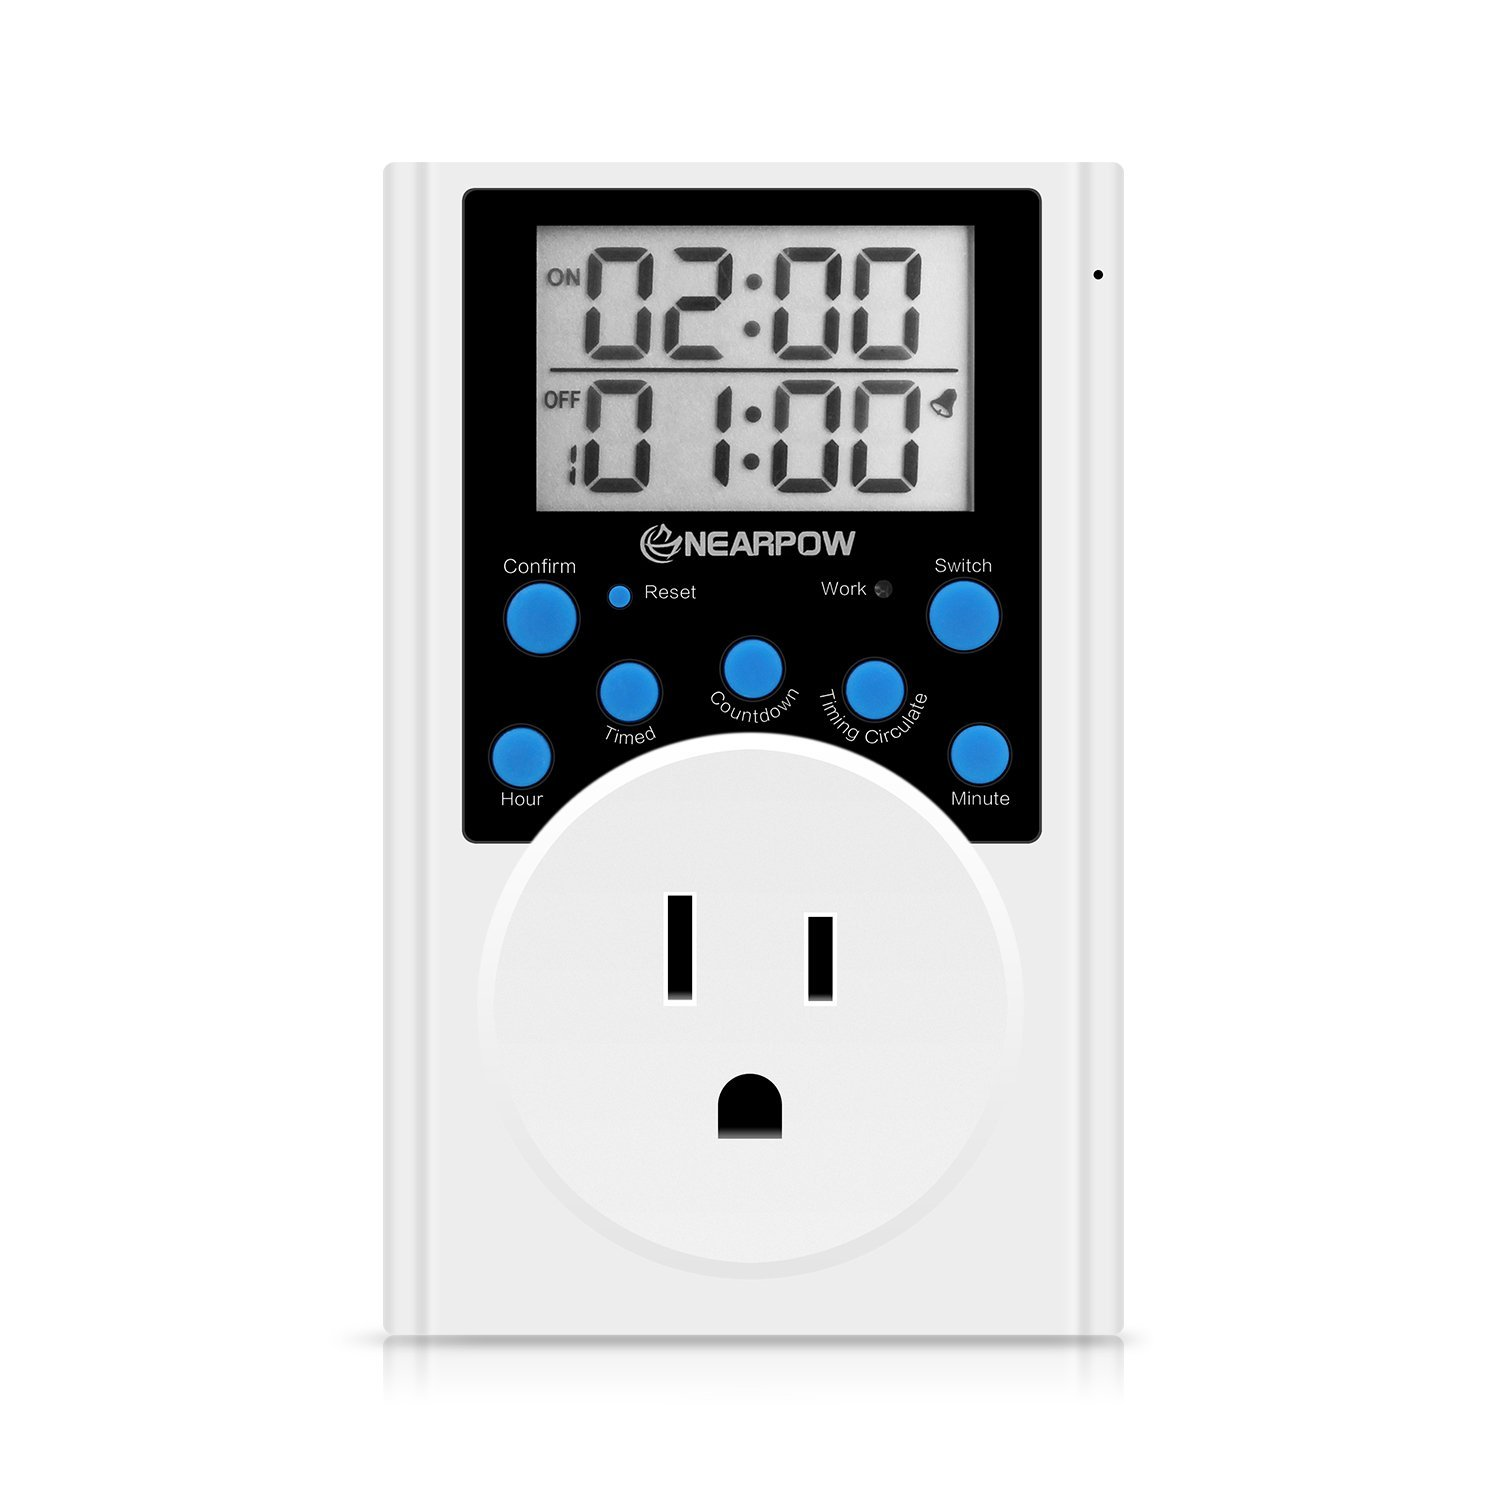 Timer Outlet, Nearpow Multifunctional Infinite Cycle Programmable Plug-in Digital Timer Switch with 3-Prong Outlet for Appliances, Energy-Saving Timer, 15A/1800W by NEARPOW